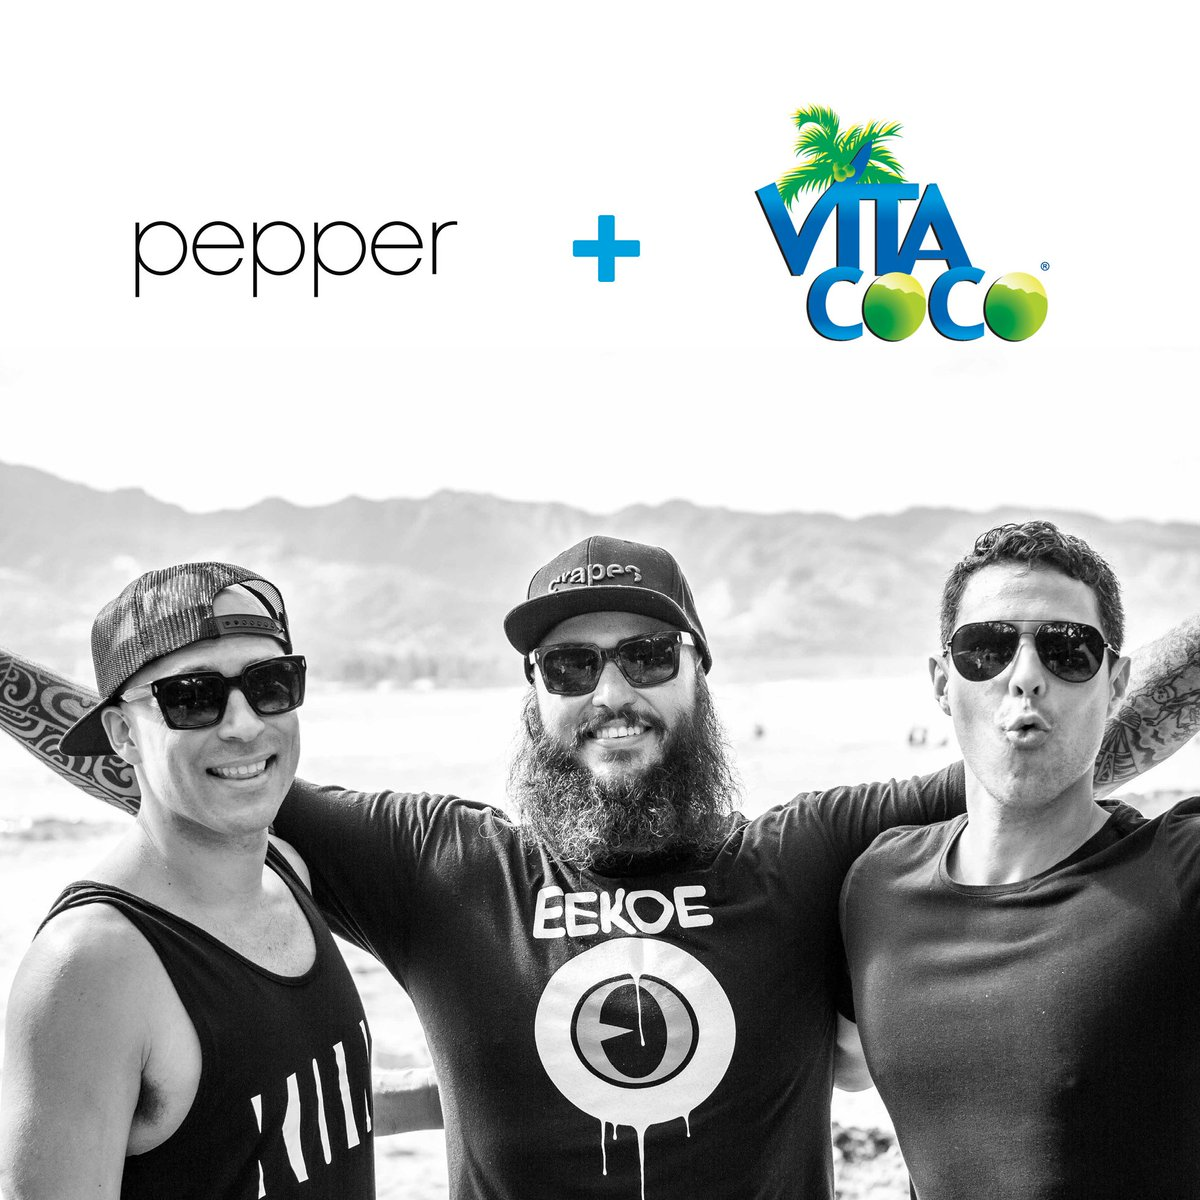 Win an in to #onelovecalireggaefest! RT 4 your chance at side-stage access to @pepperlive  & 3-months of @VitaCoco https://t.co/CNM62U5WKS